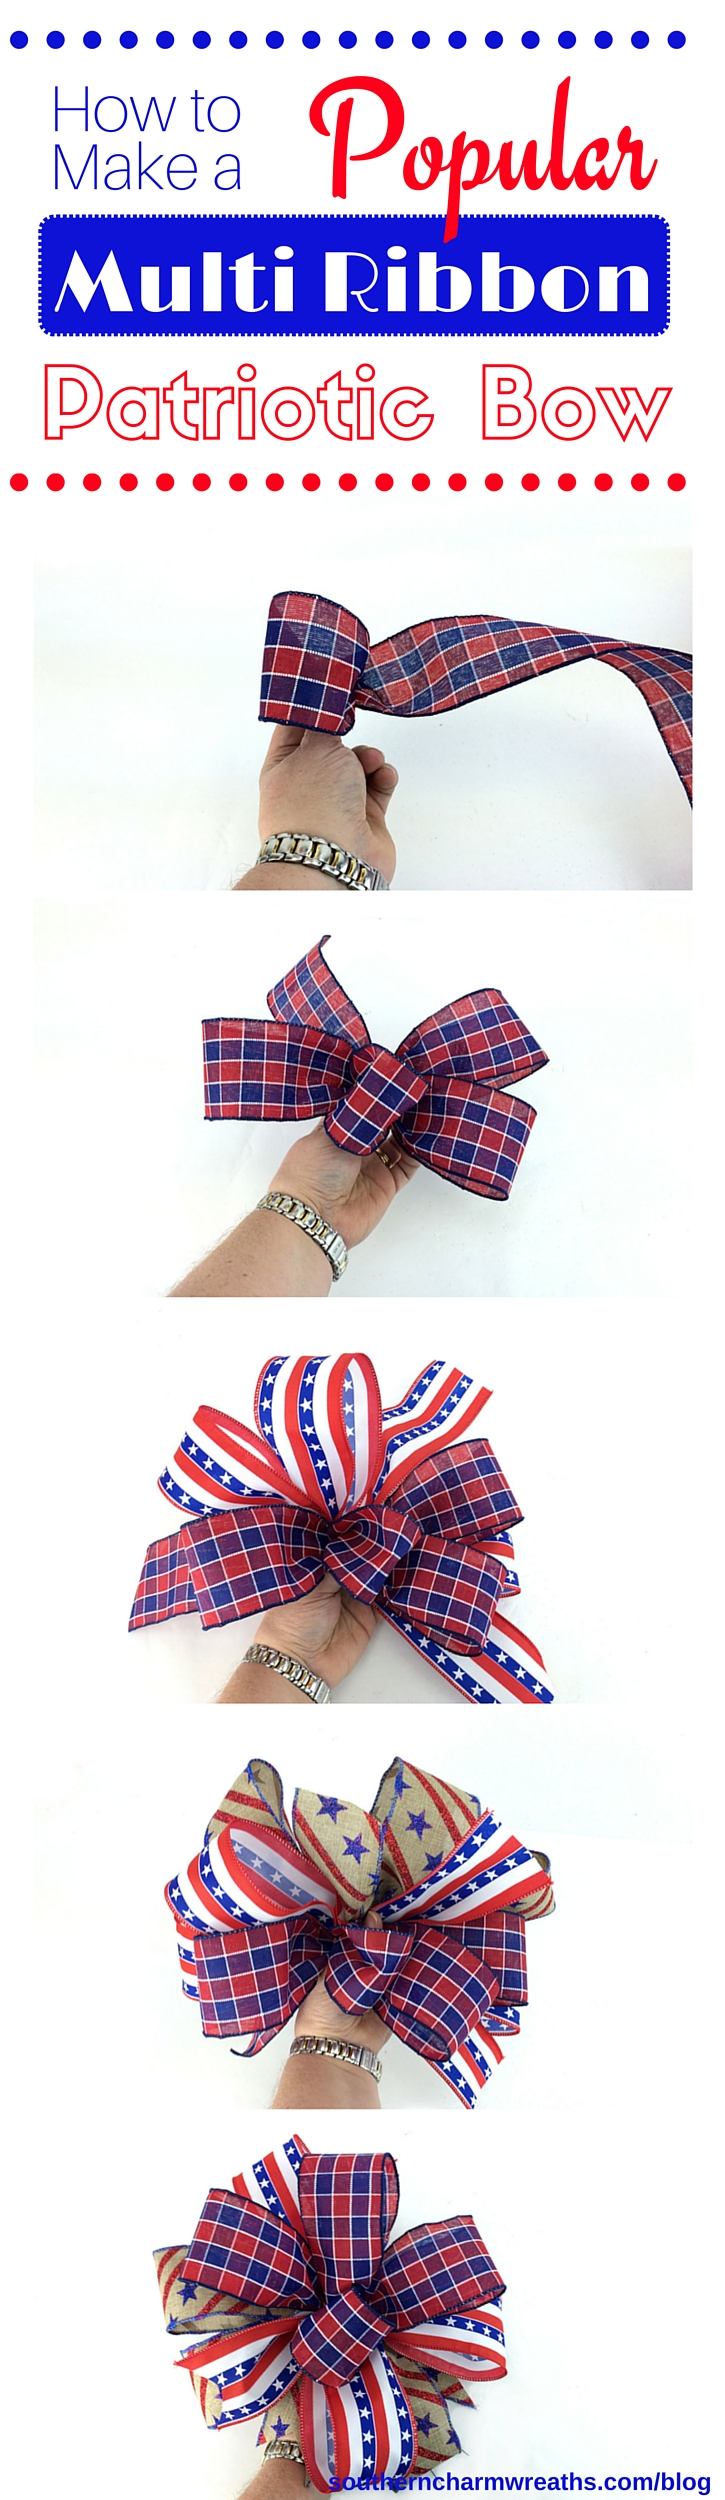 4th of July Decoratons - How to Make a Bow for a Wreath - Patriotic Bow -Step by Step How to Make a Bow